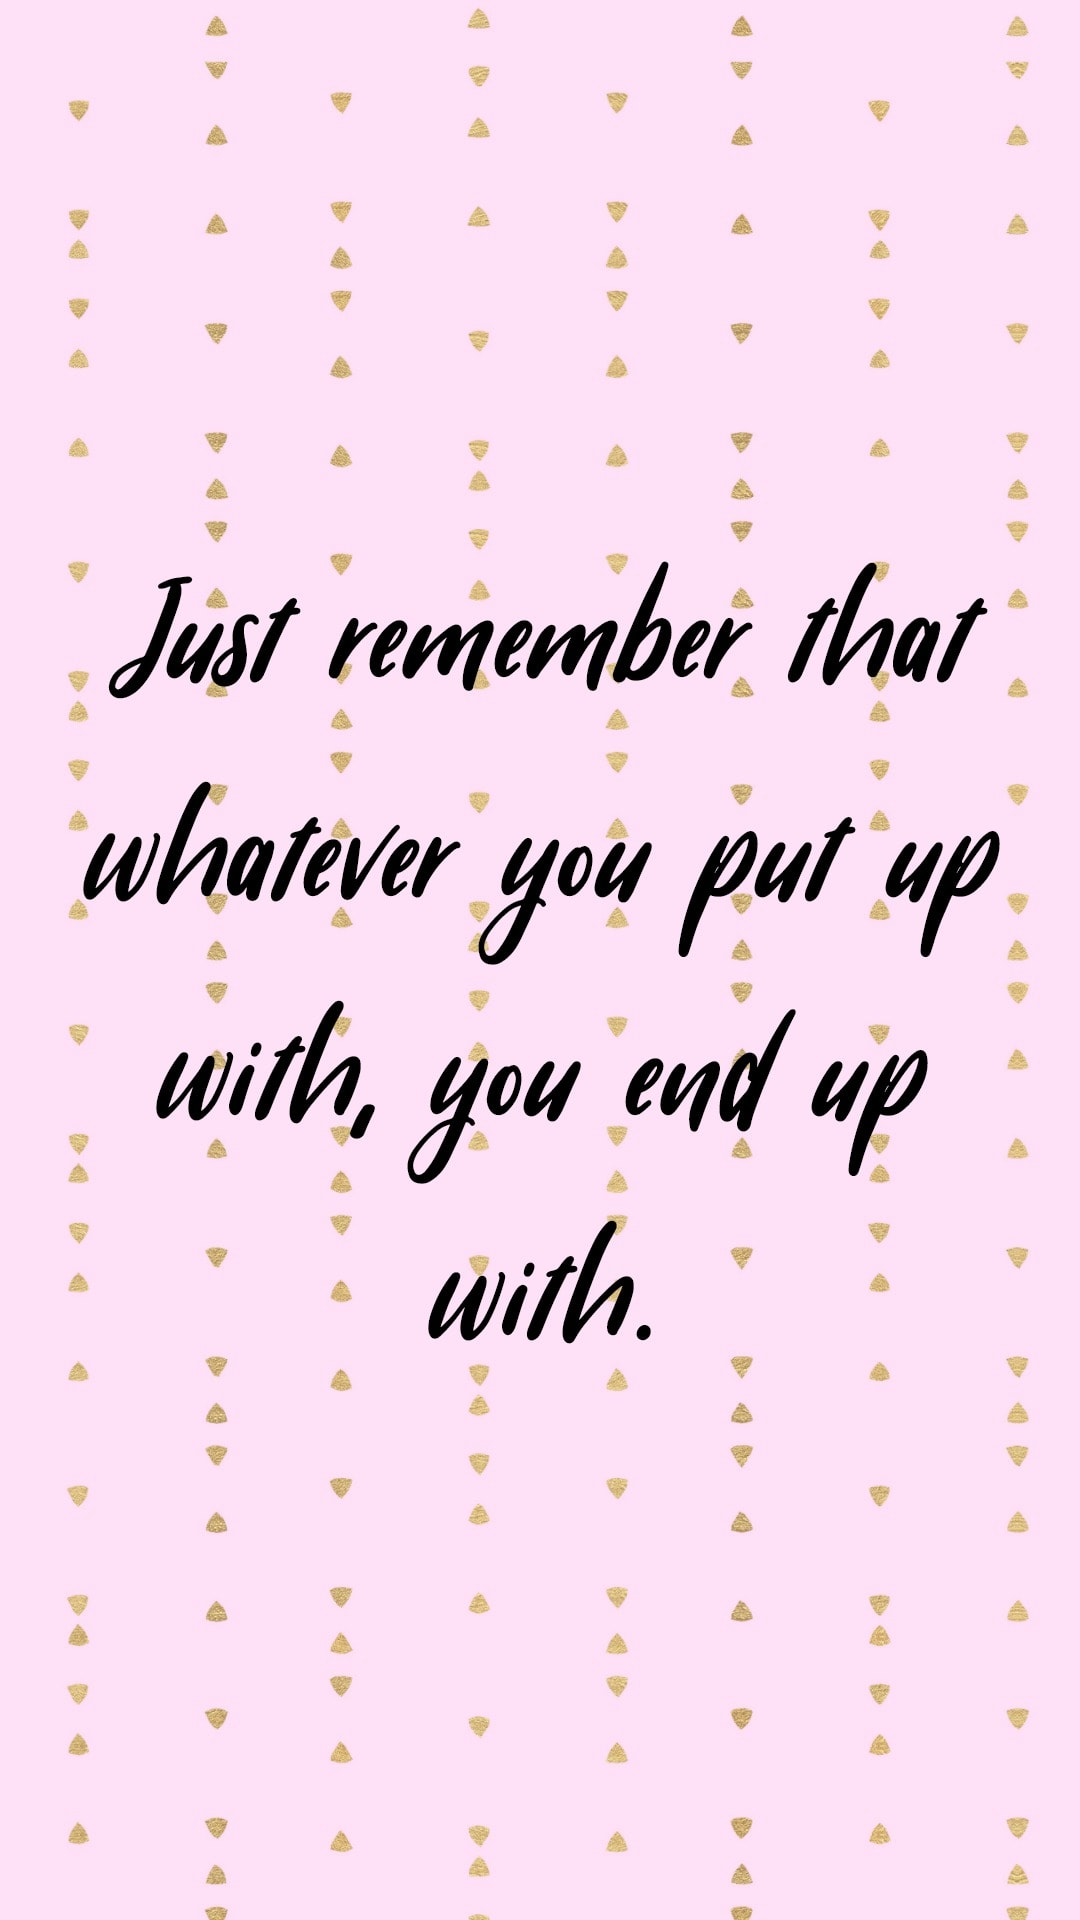 Just remember that whatever you put up with, you end up with.